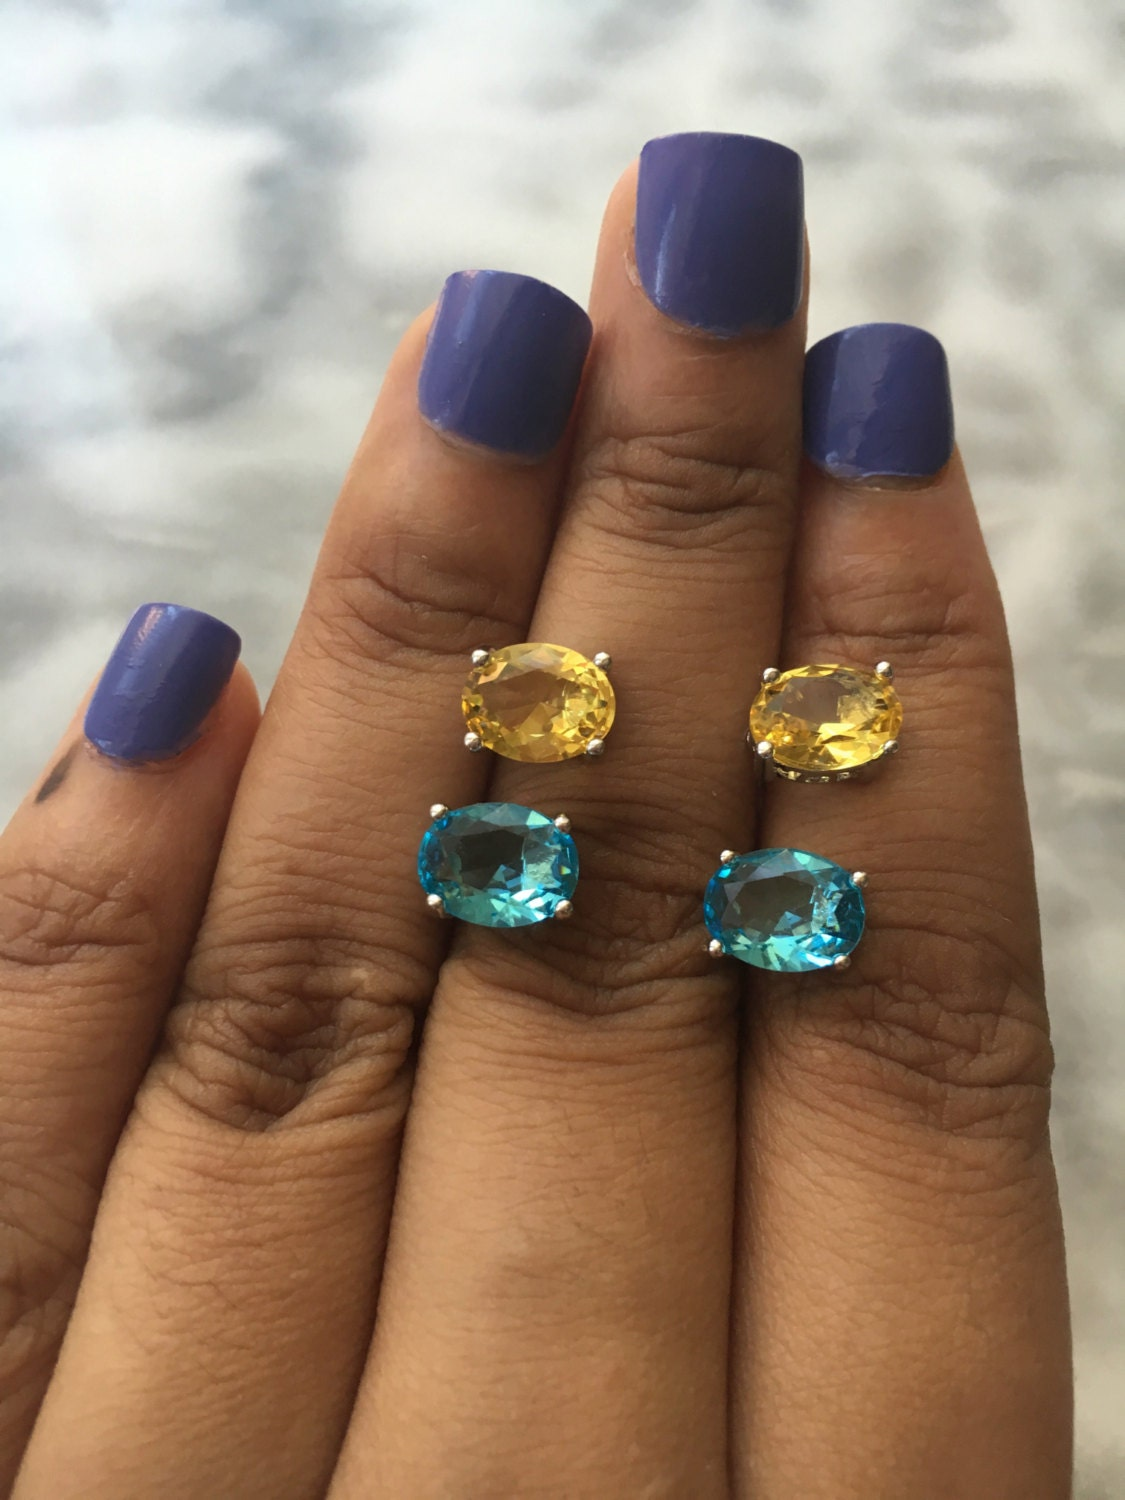 stud aqua s lyst w blue ct tw gold marine in macys earrings macy women t white jewelry designer aquamarine